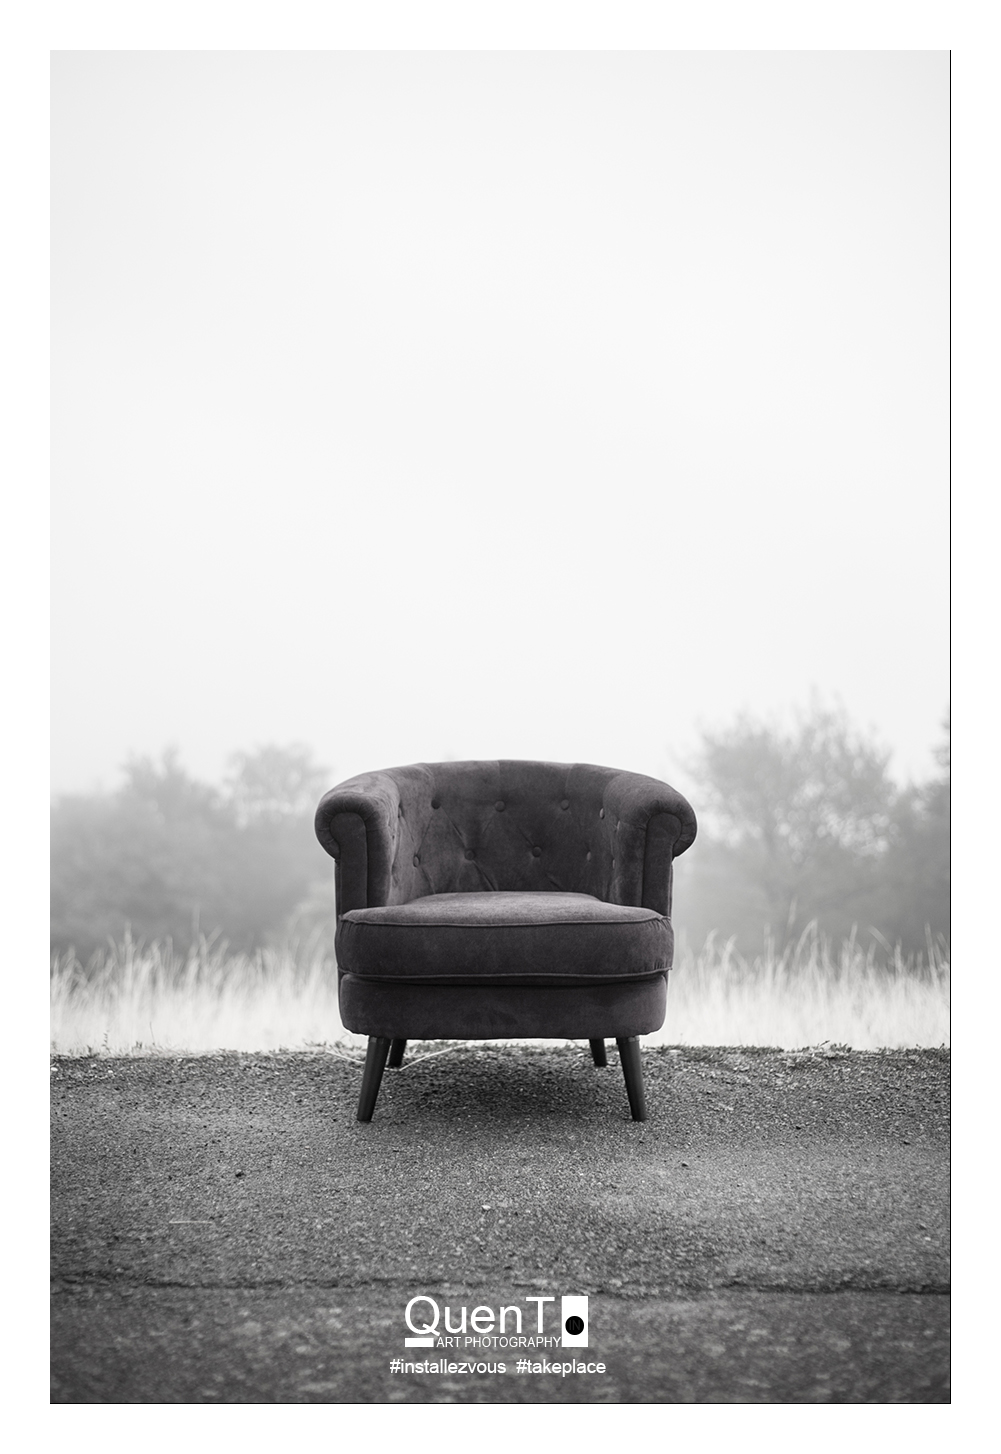 Black and white chair photography - The Trip Of The Chair By Quent